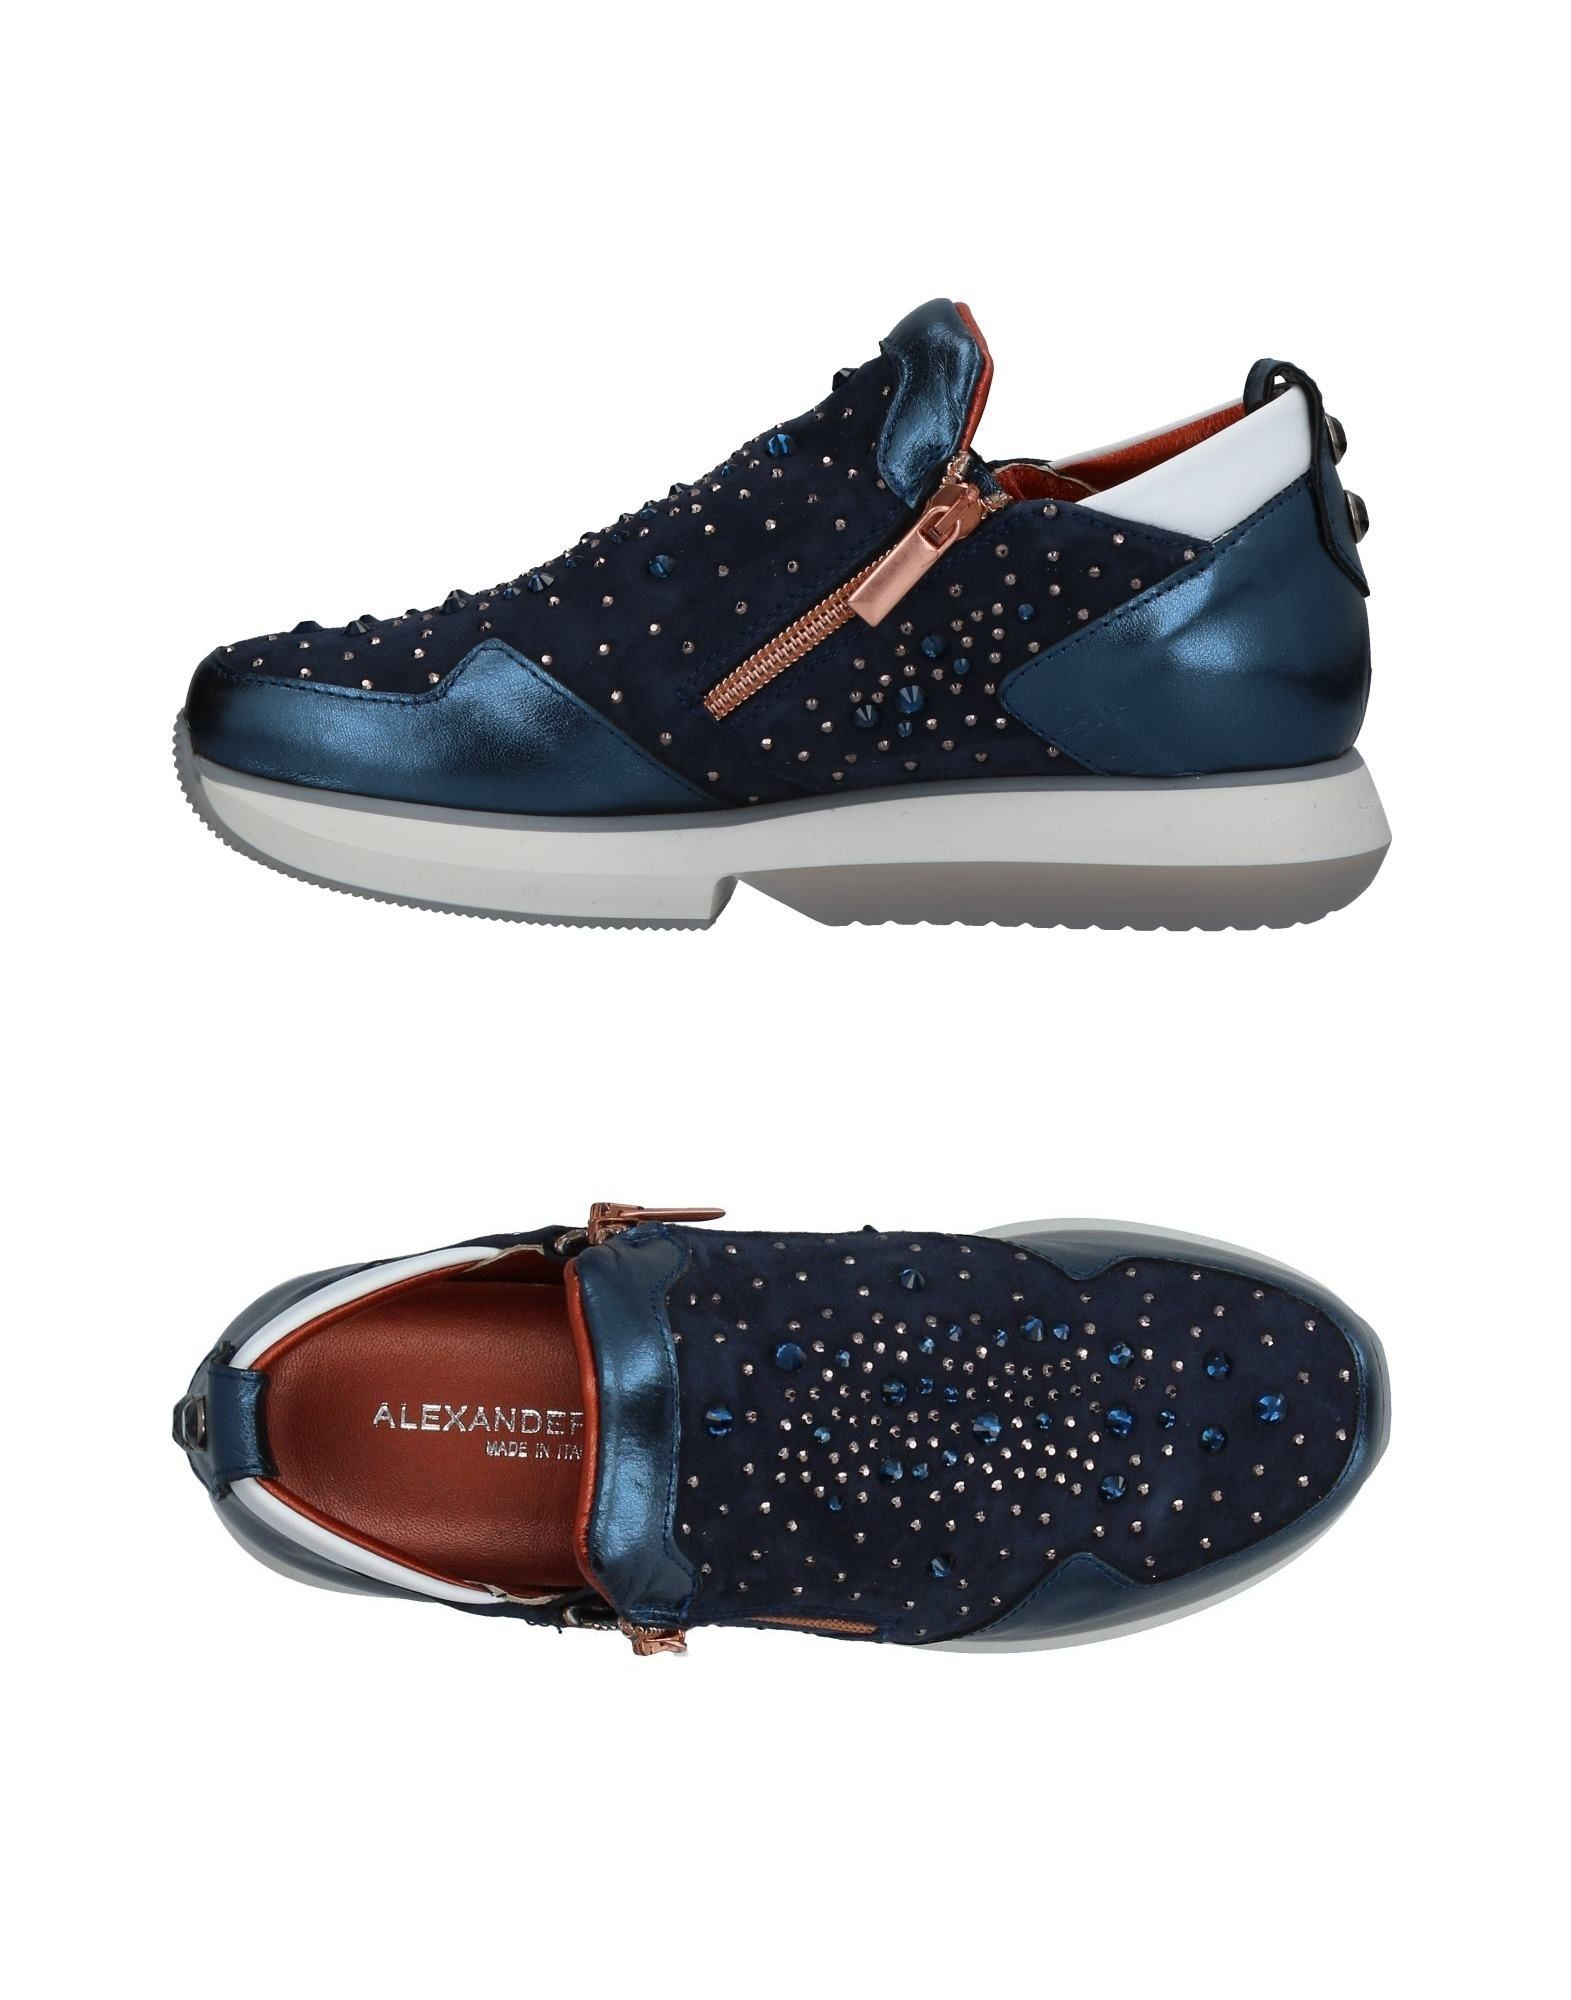 Sneakers Alexander Smith Femme - Sneakers Alexander Smith sur